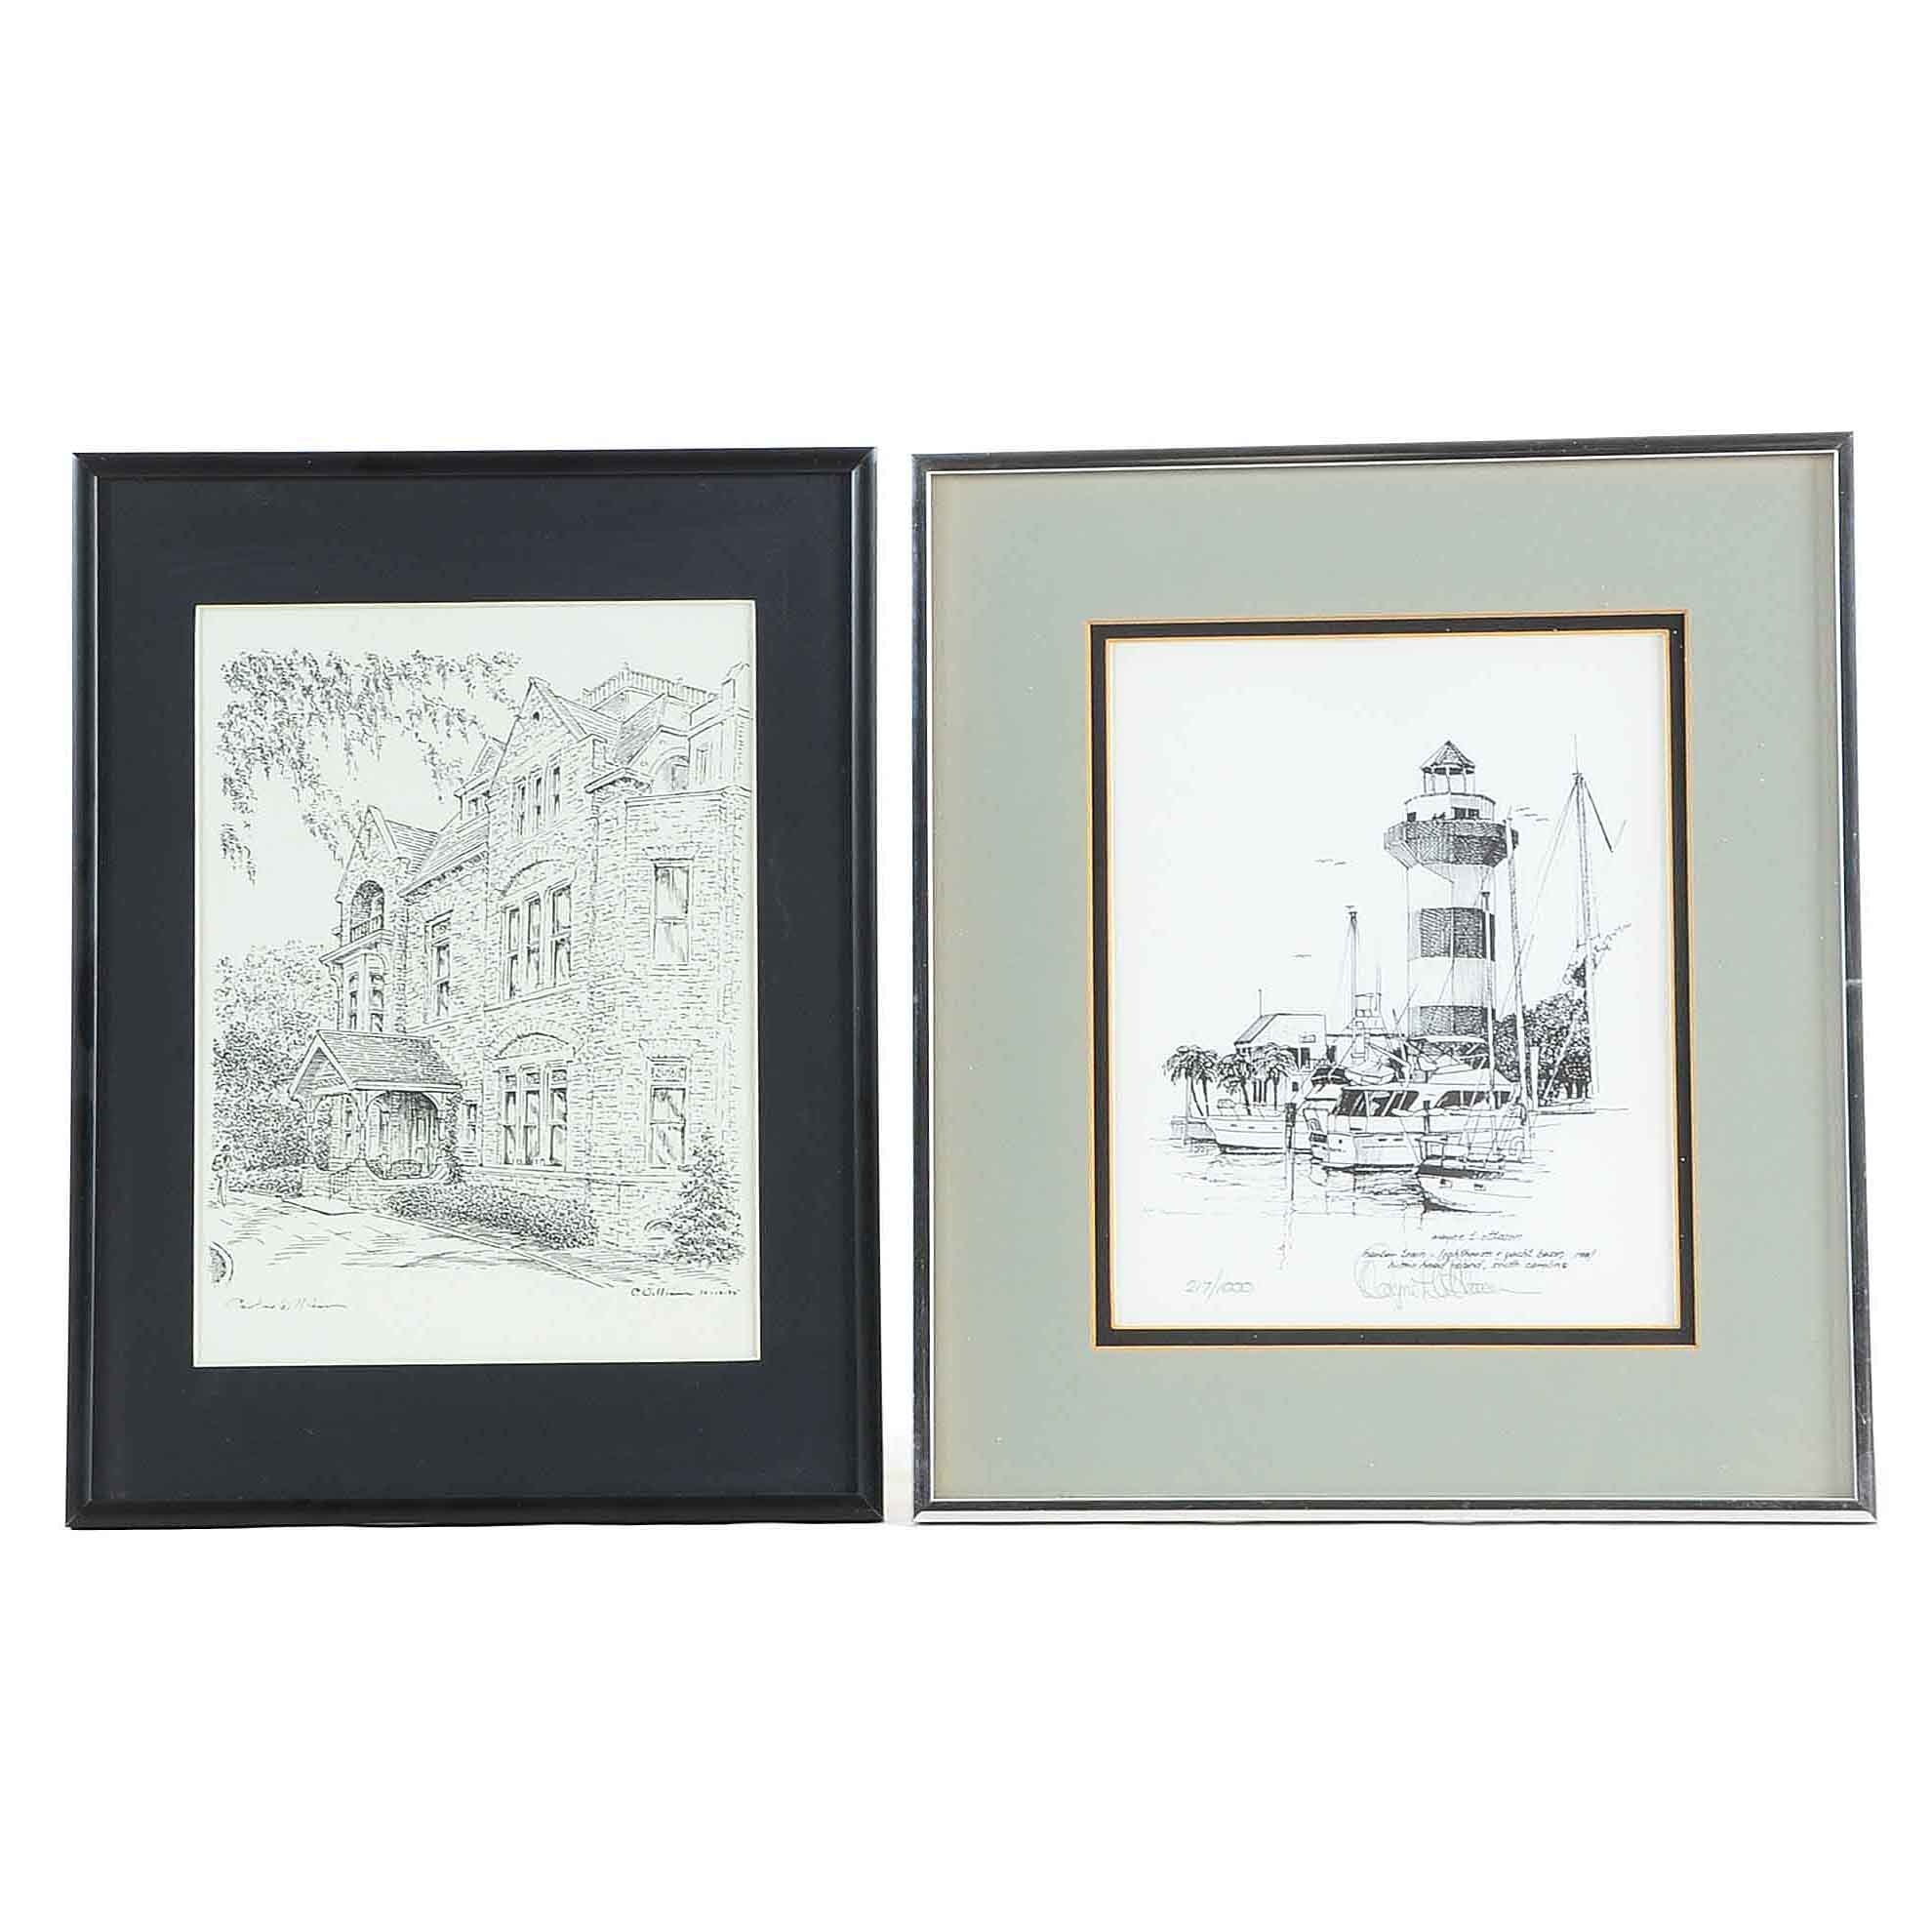 Two Signed Black and White Lithographic Prints